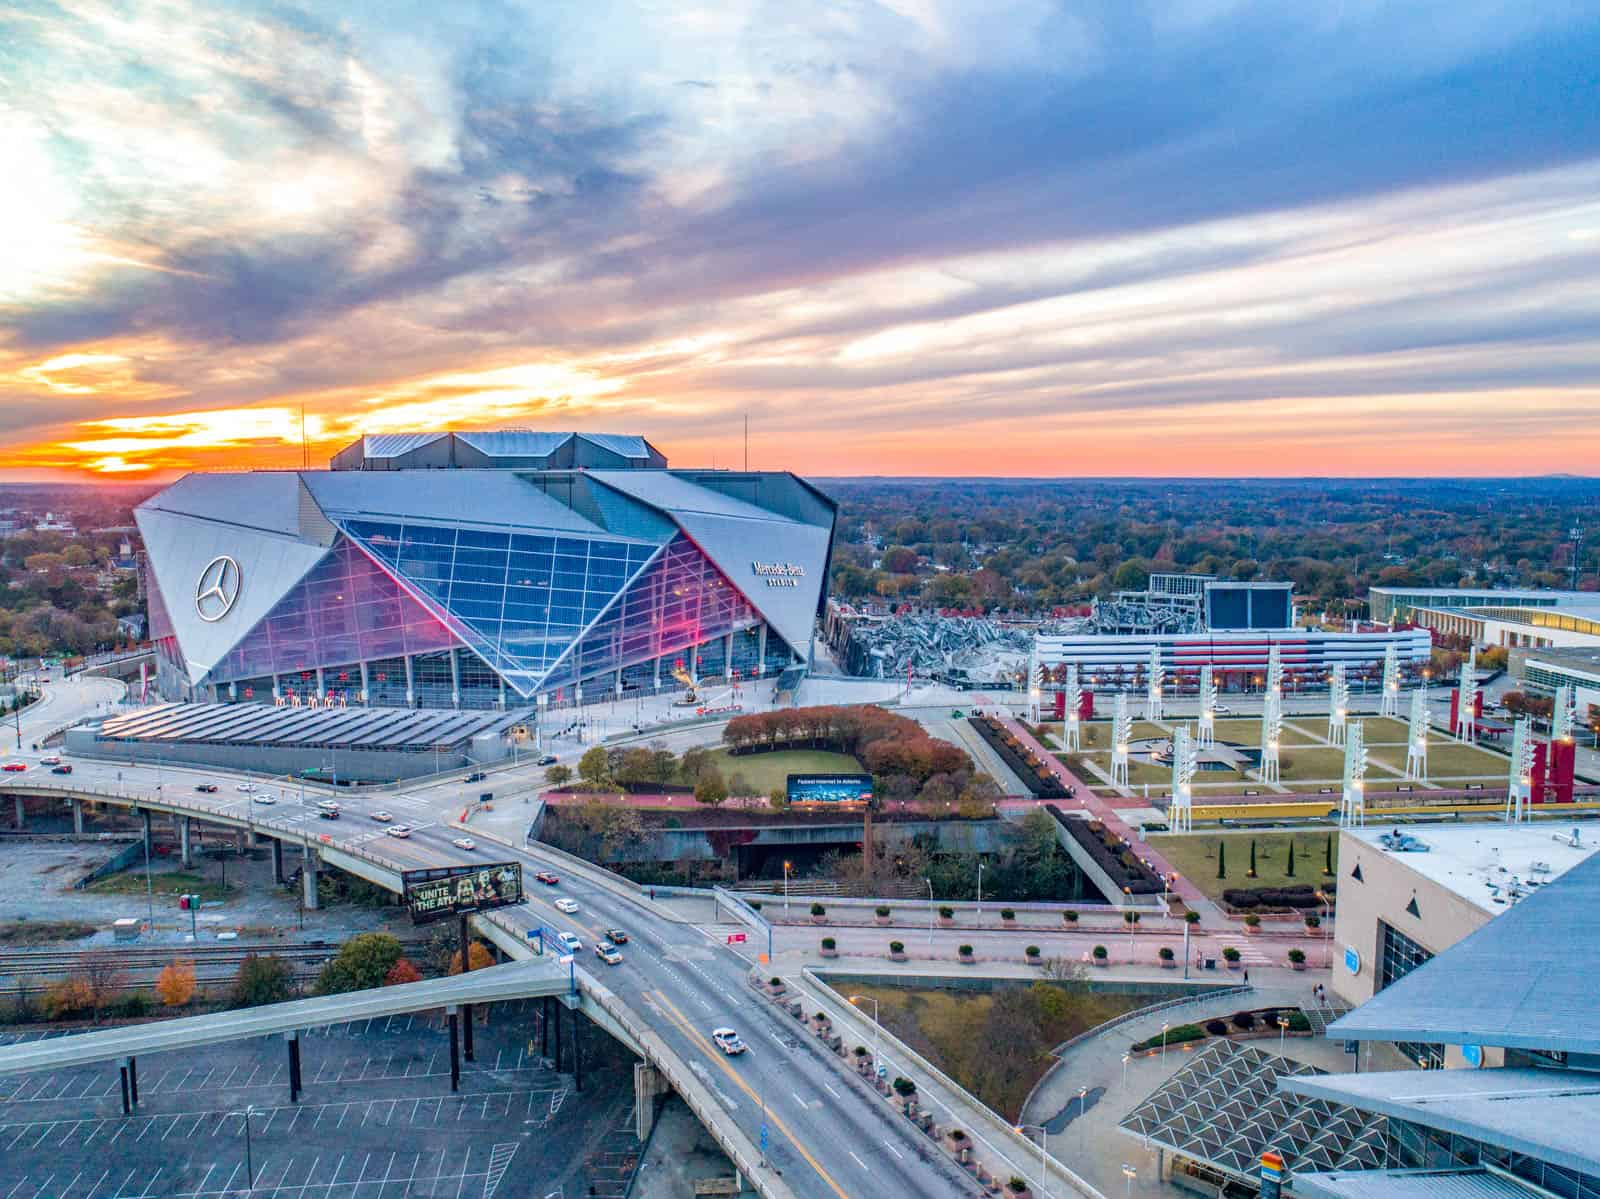 aerial drone photo of Mercedes-Benz Stadium at sunset